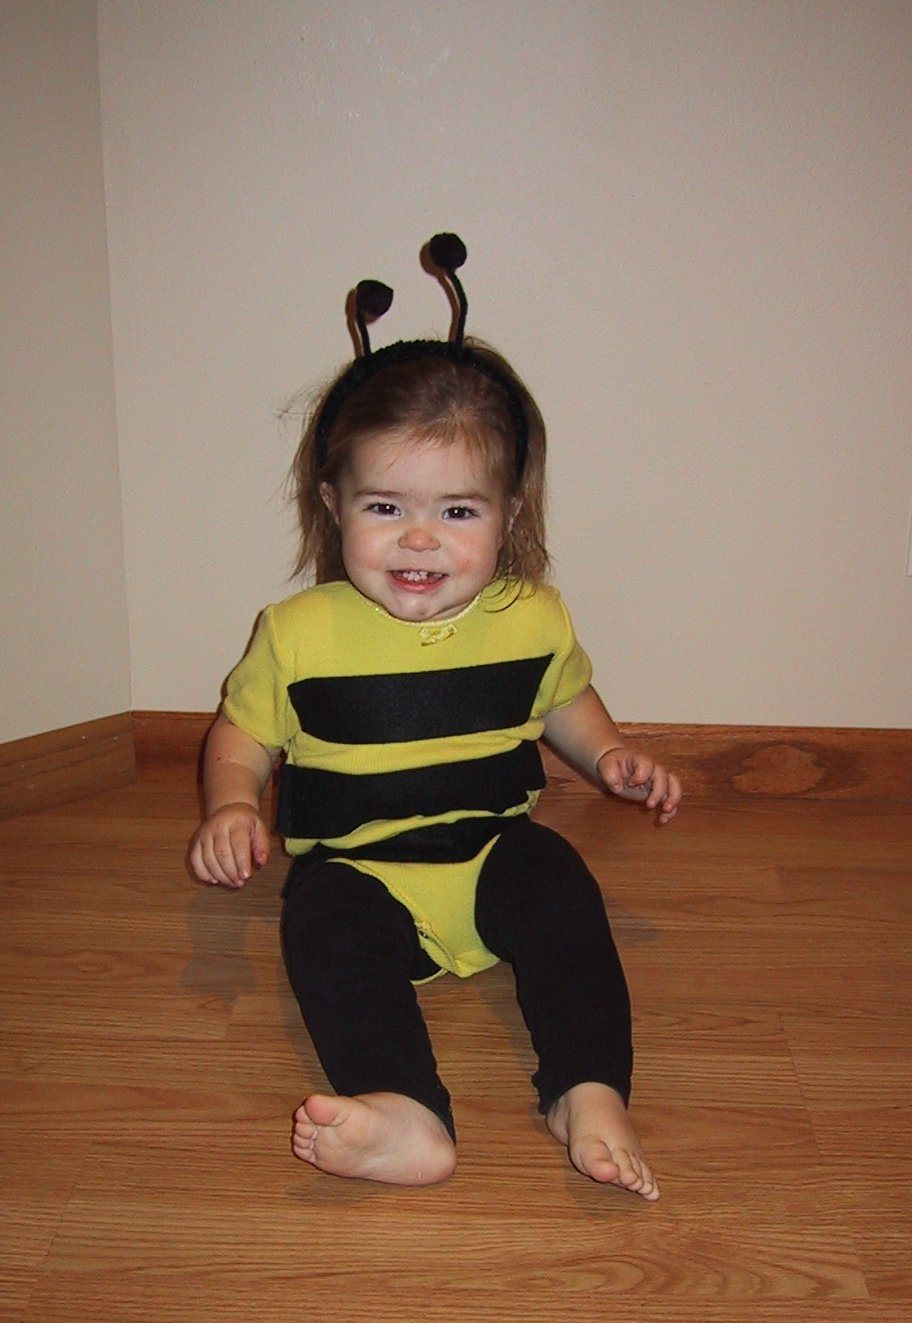 Homemade costume idea bumblebee mommysavers homemade costume idea bumblebee solutioingenieria Choice Image